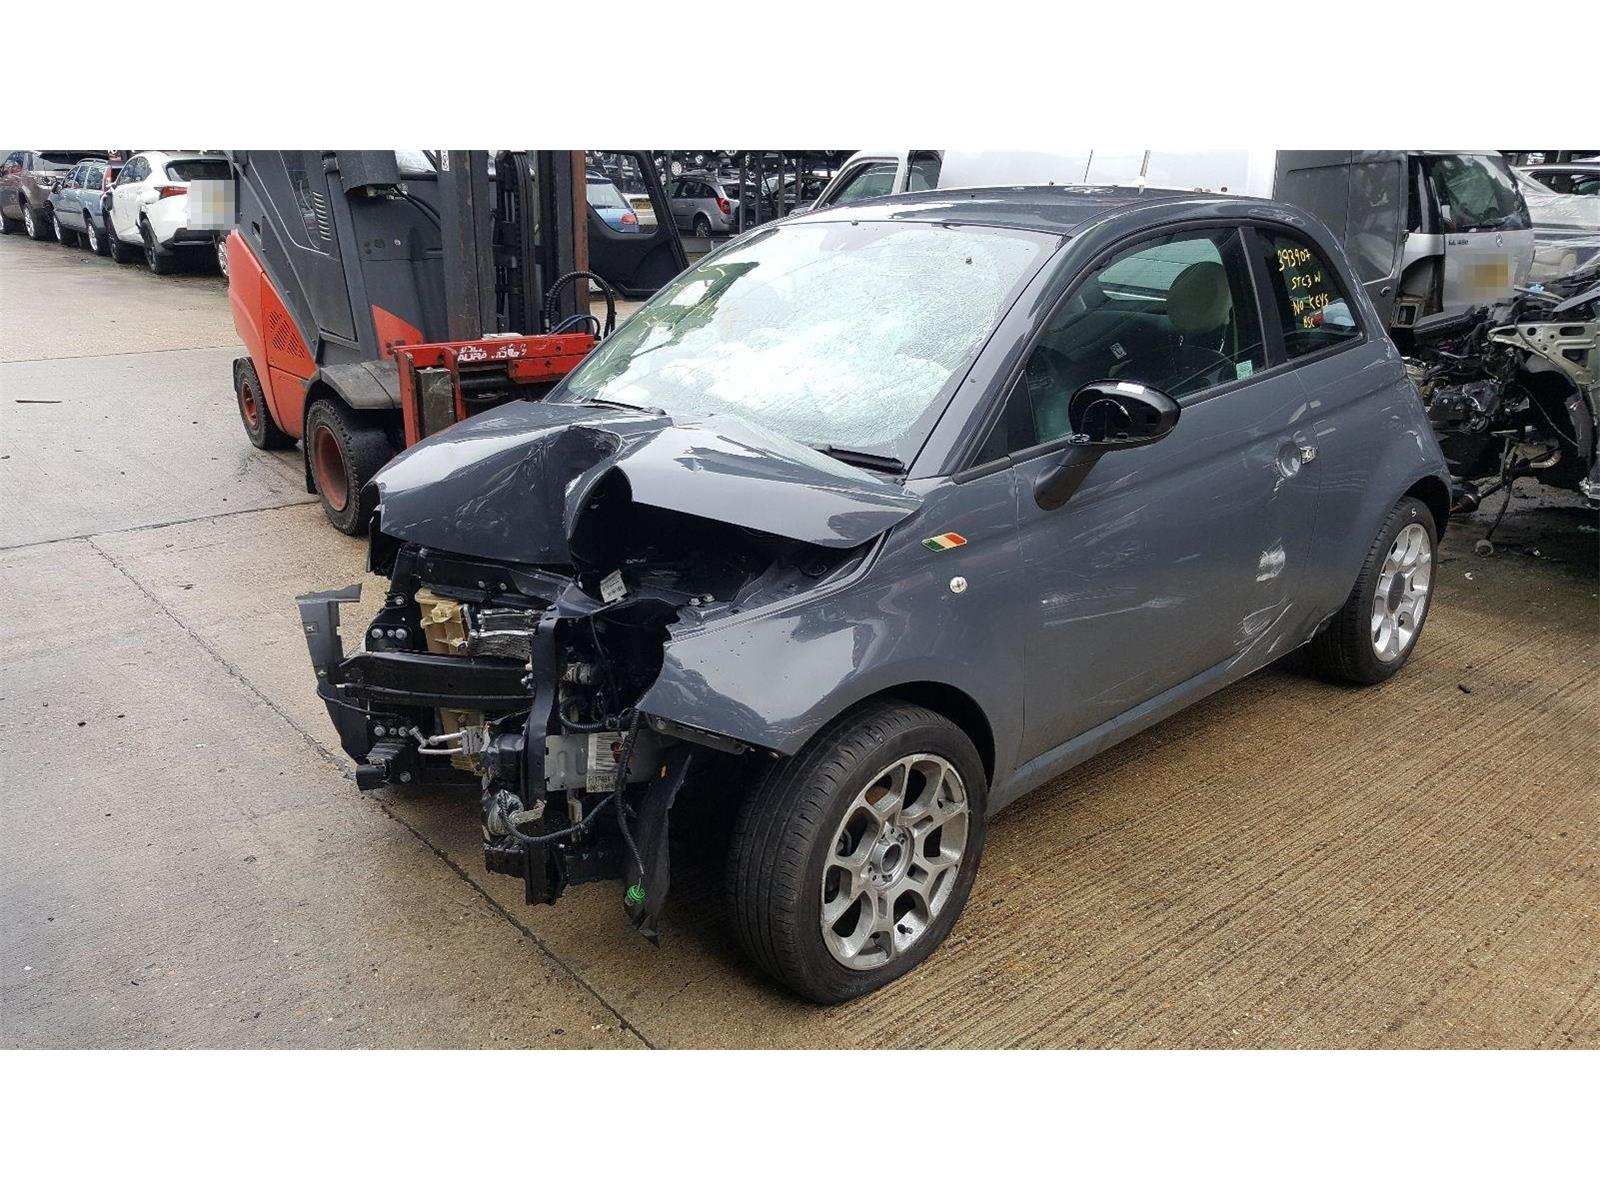 Fiat 500 2008 To 2015 Colour Therapy 3 Door Hatchback / scrap / salvage car  for sale / auction | Silverlake Autoparts